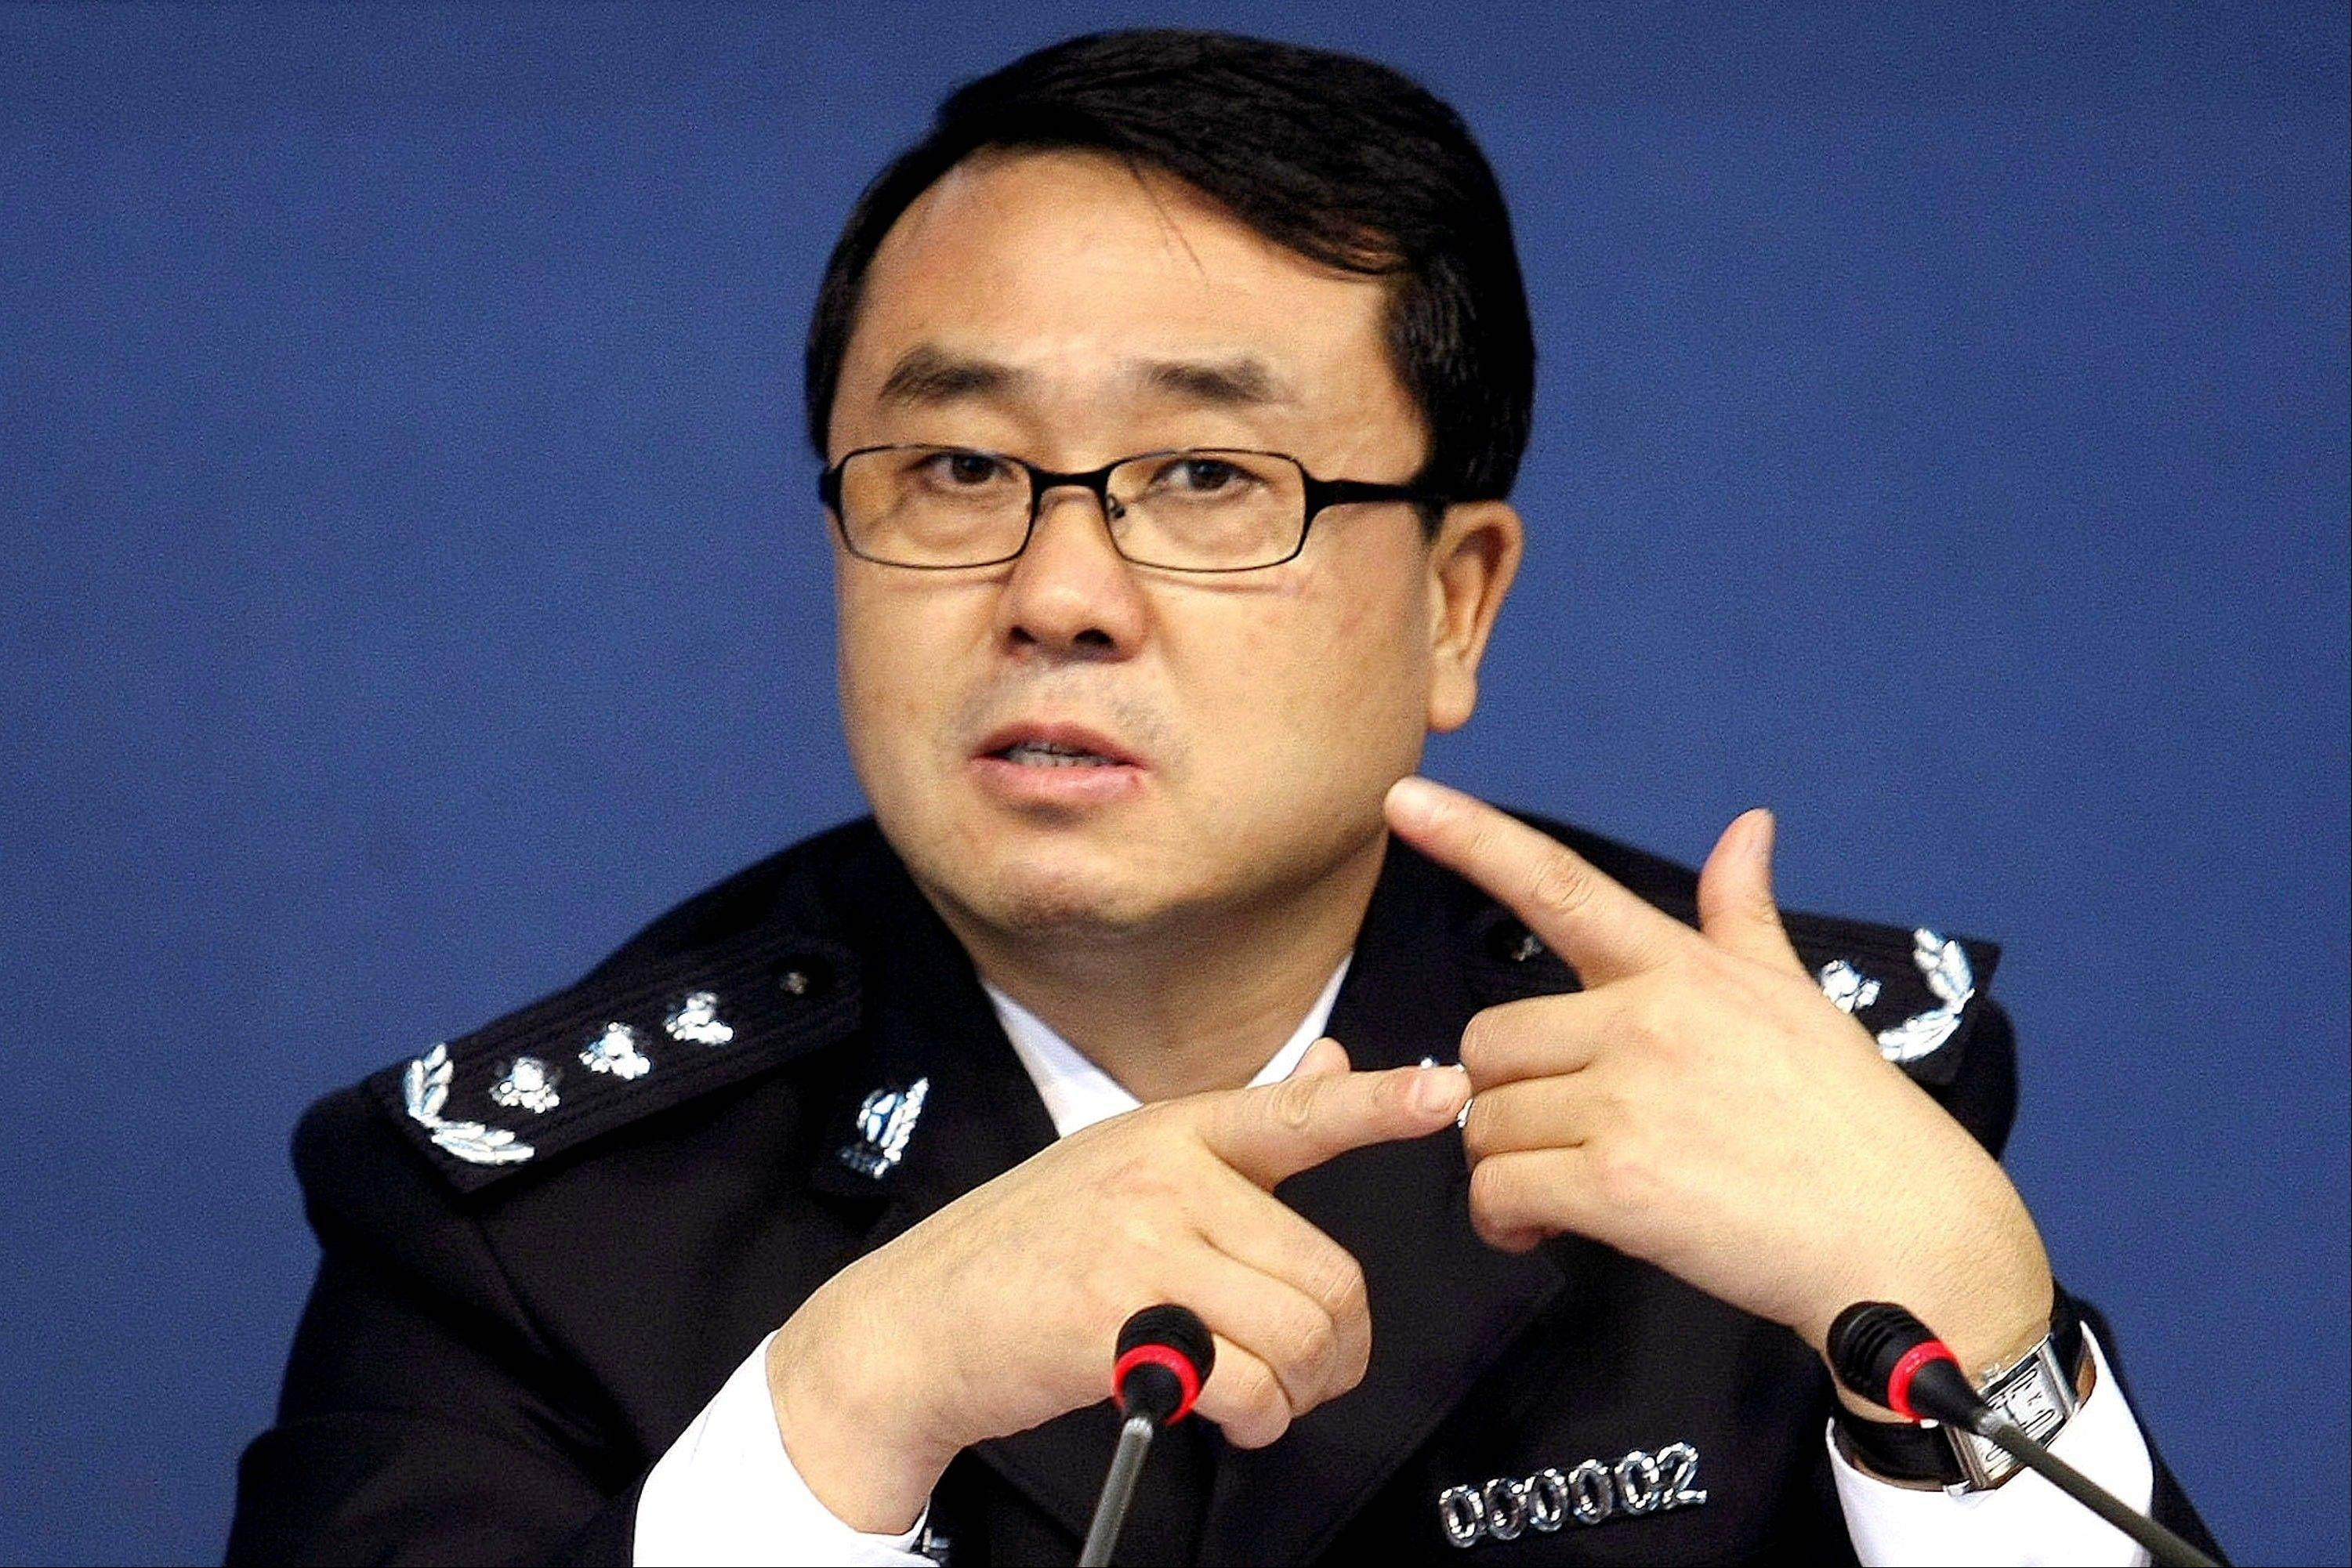 Wang Lijun, the ex-police chief at the center of China's seamy political scandal asked U.S. diplomats for asylum after he covered up a murder for the wife of the Communist Party boss but then grew estranged and feared for his life, the Chinese government said Wednesday, Sept. 19, 2012.